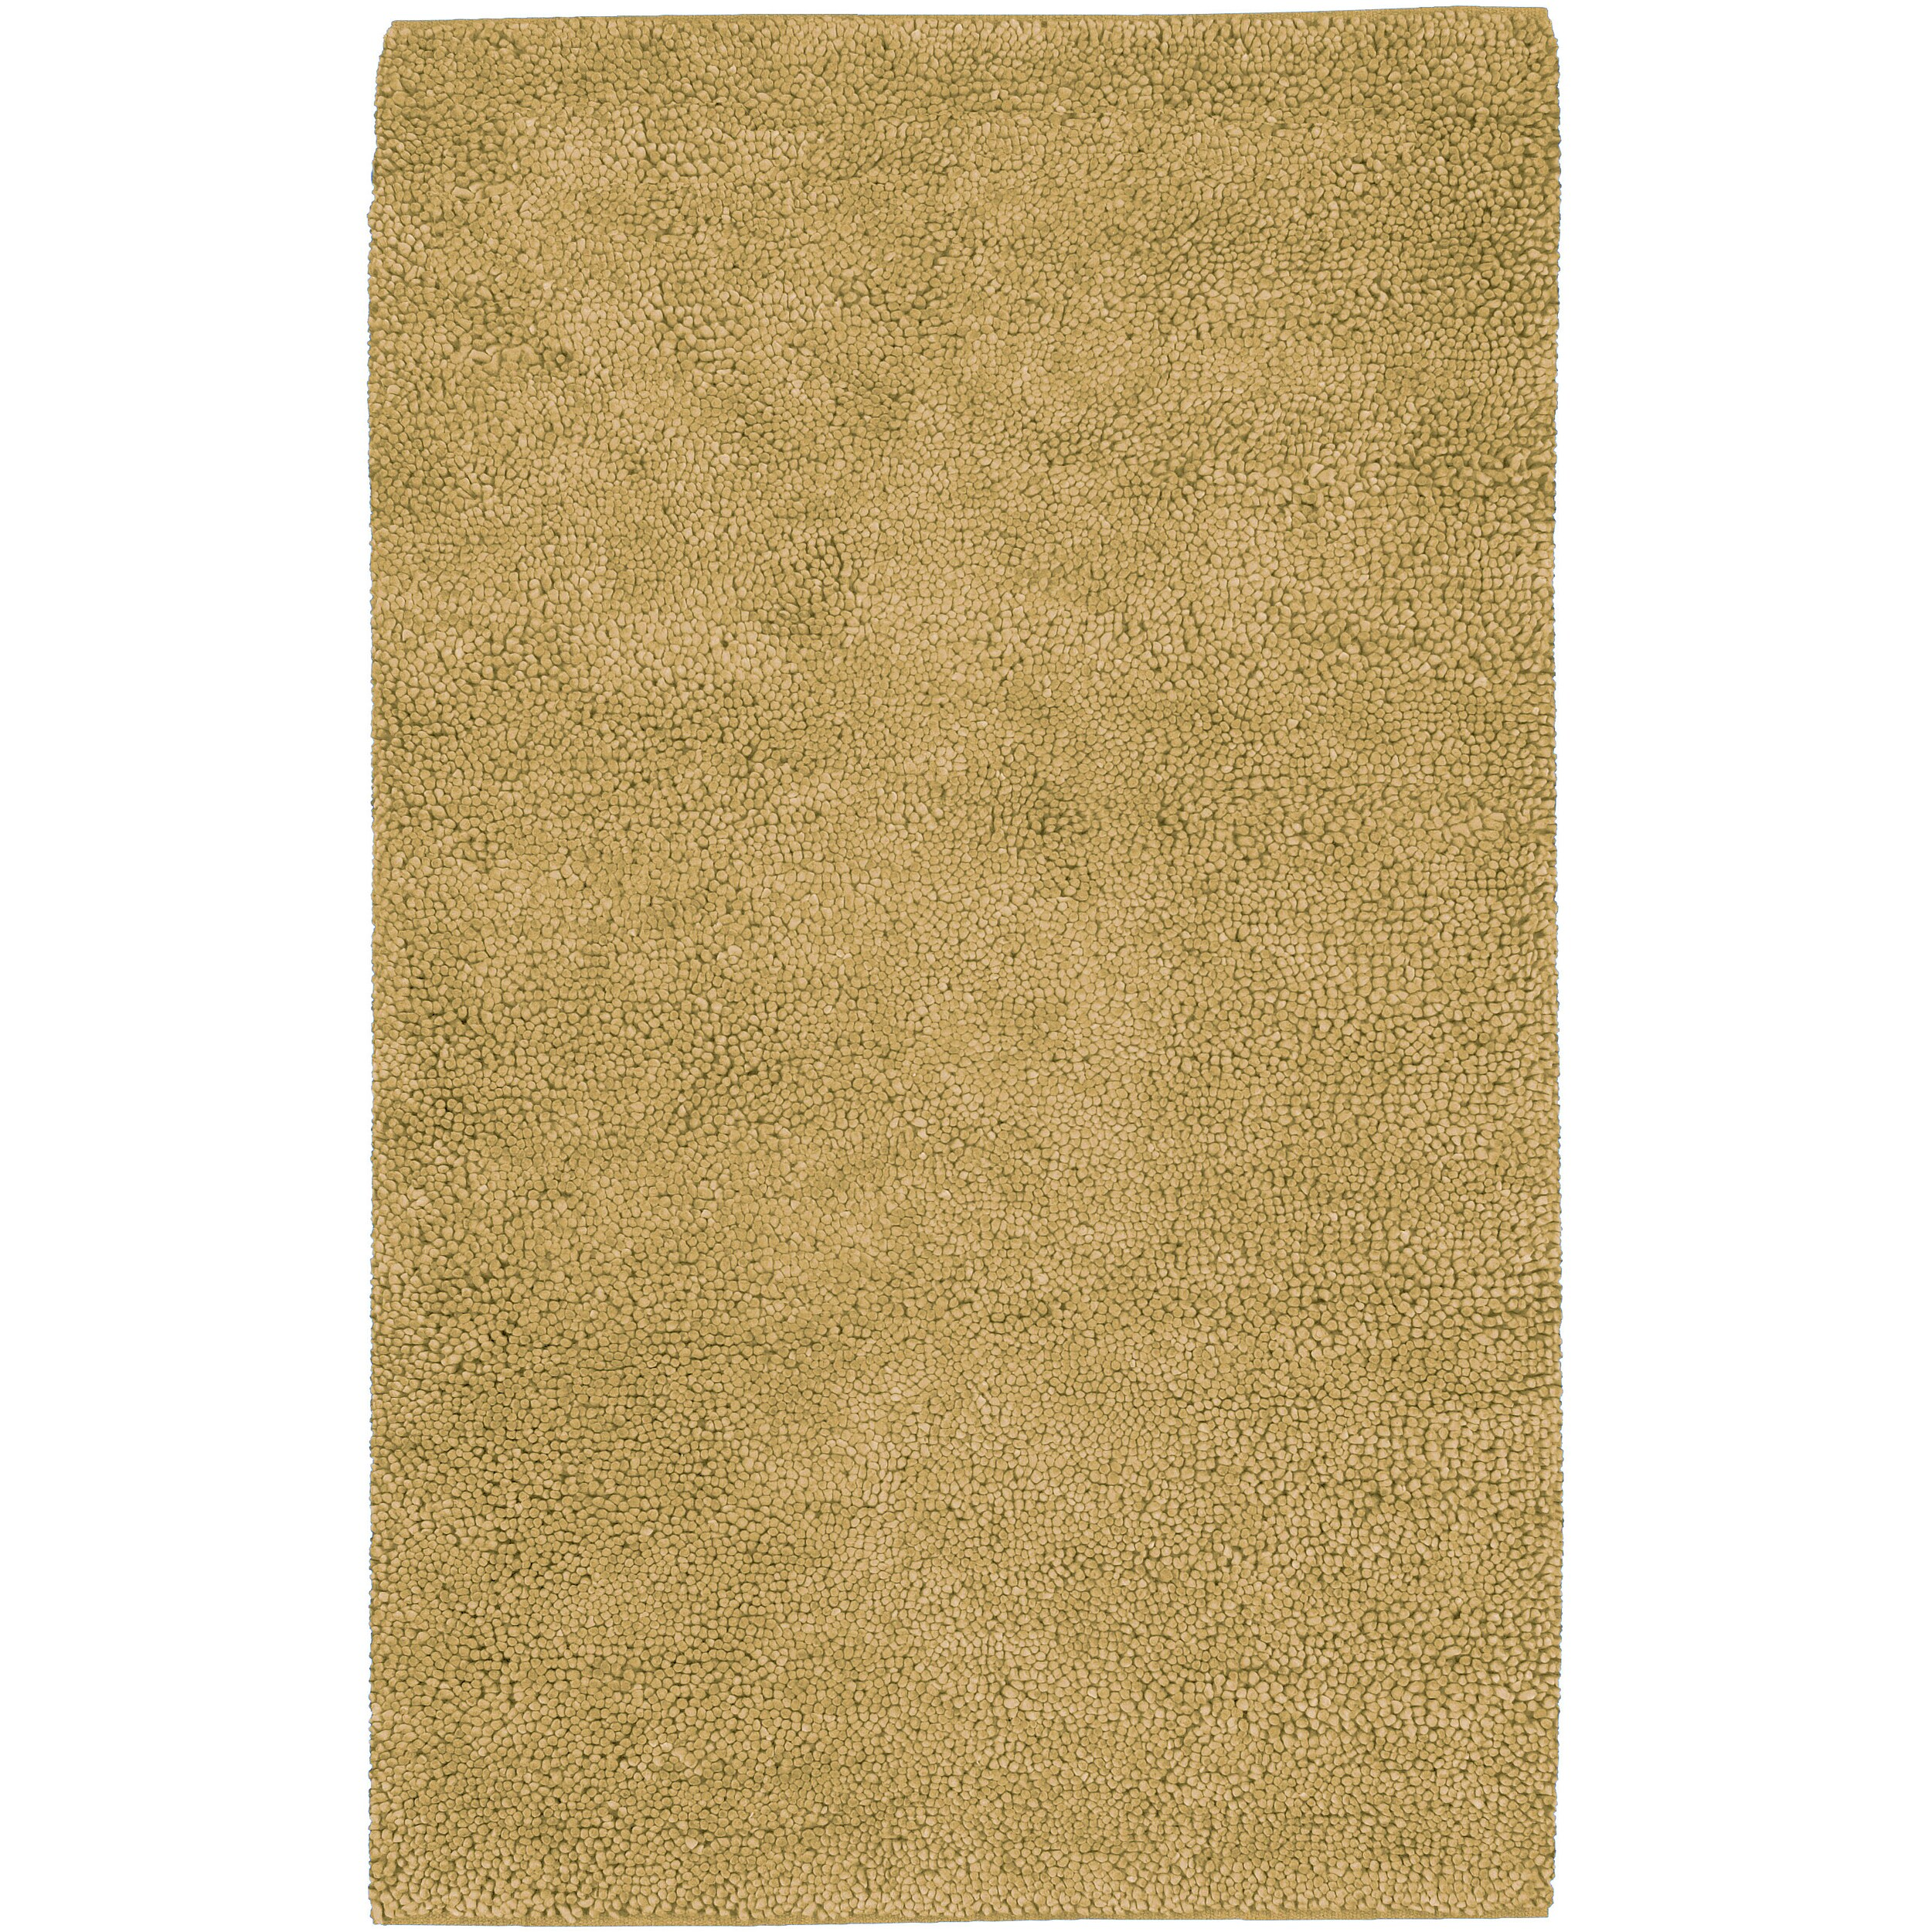 Hand-woven Gold Blancher Colorful Plush Shag New Zealand Felted Wool Rug (3'6 x 5'6)